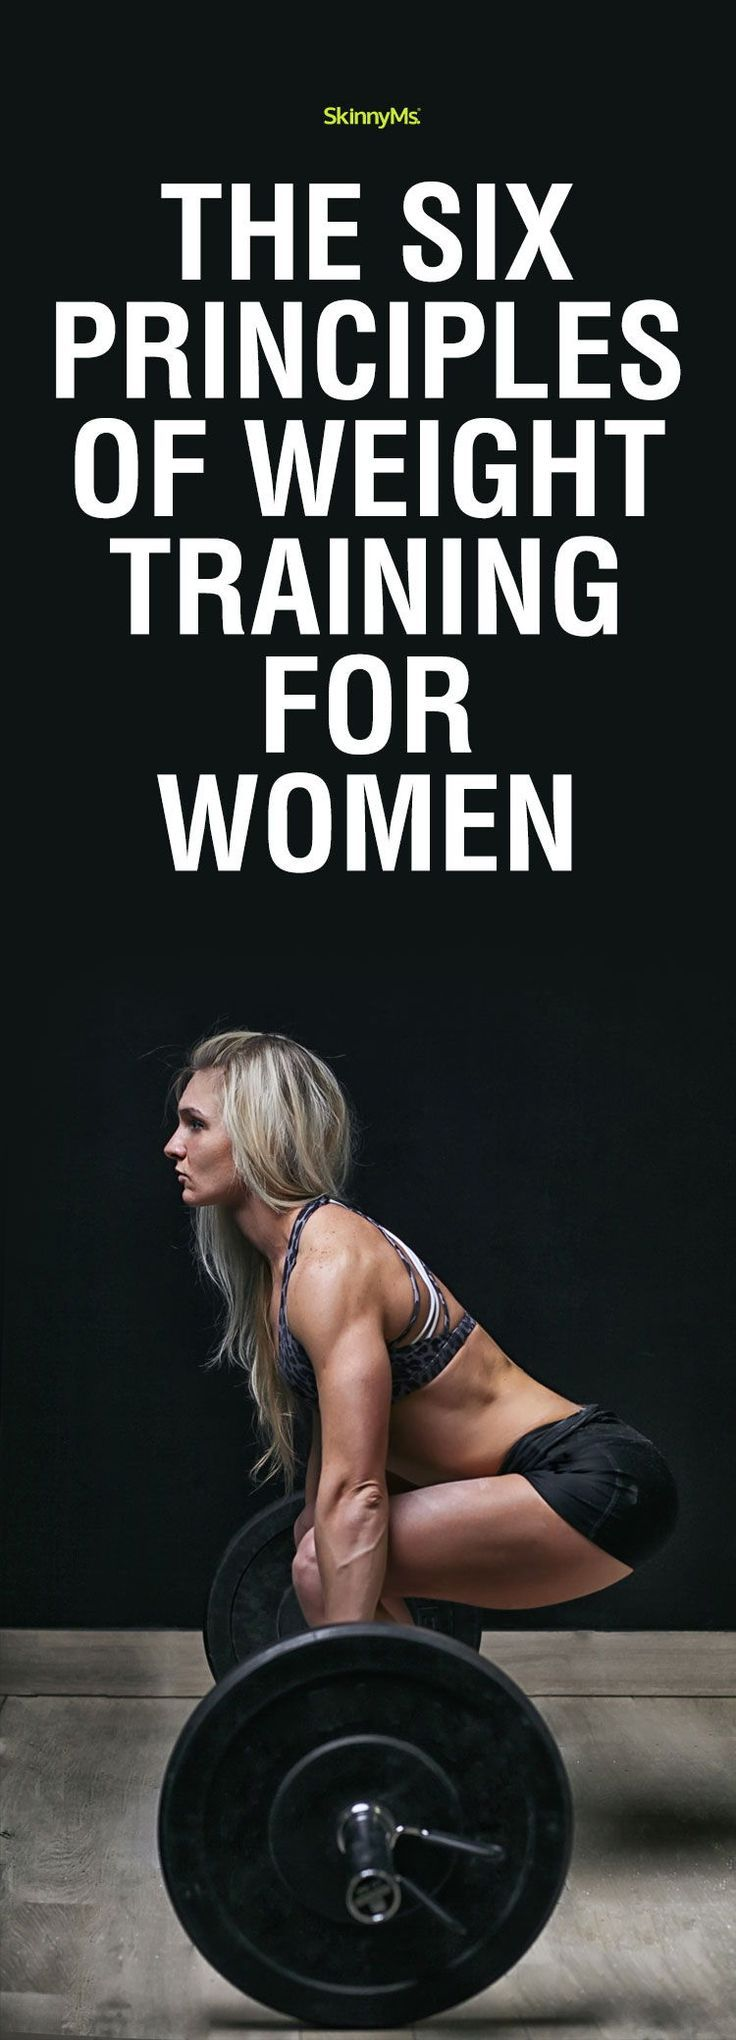 The Six Principles of Weight Training for Women   Skinny Ms.